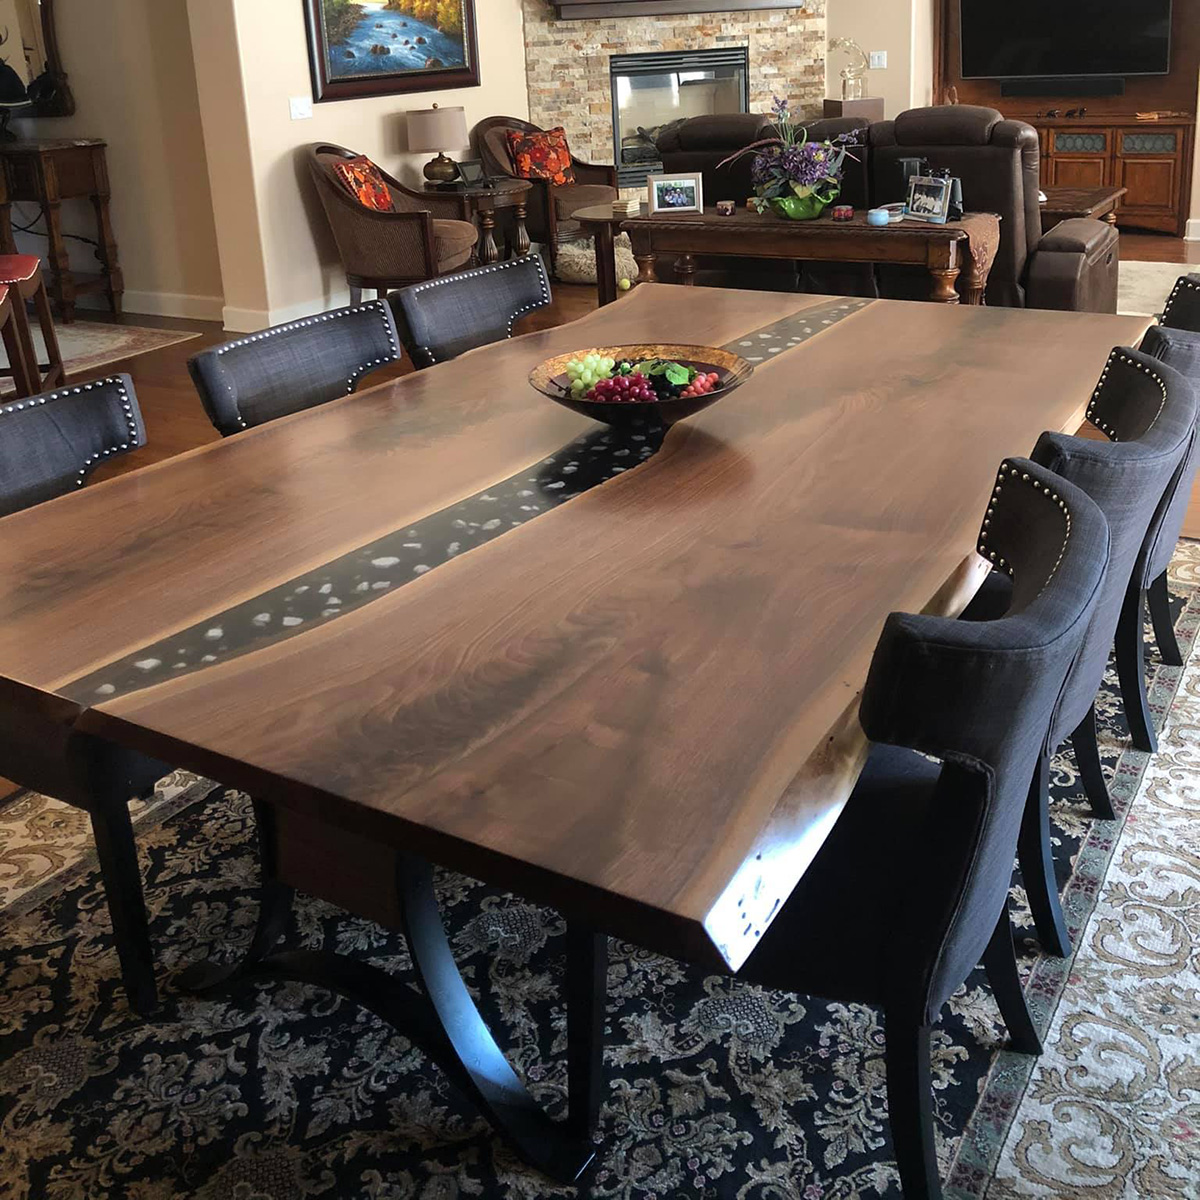 Live Edge River Table With Embedded Crystals